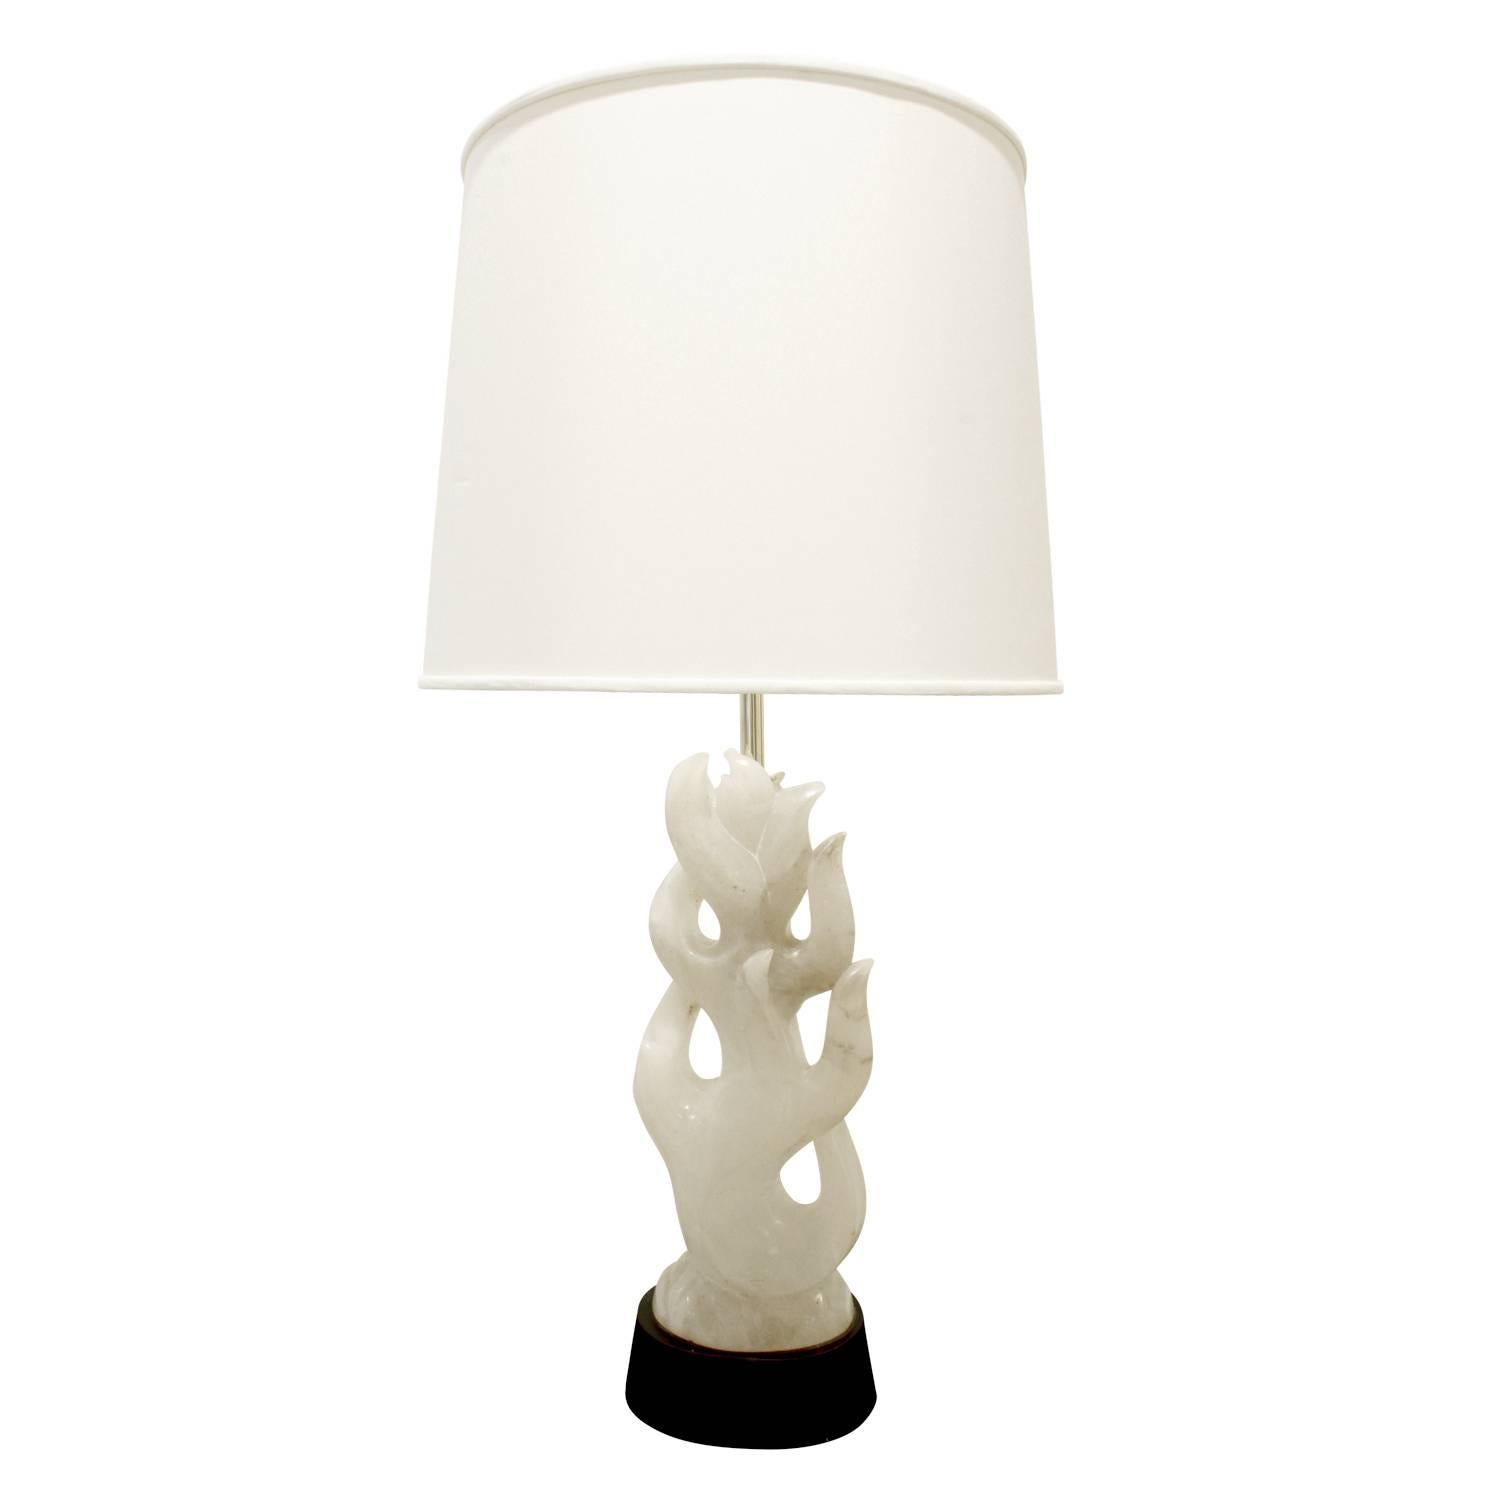 Hand-Carved Alabaster Table Lamp, 1940s